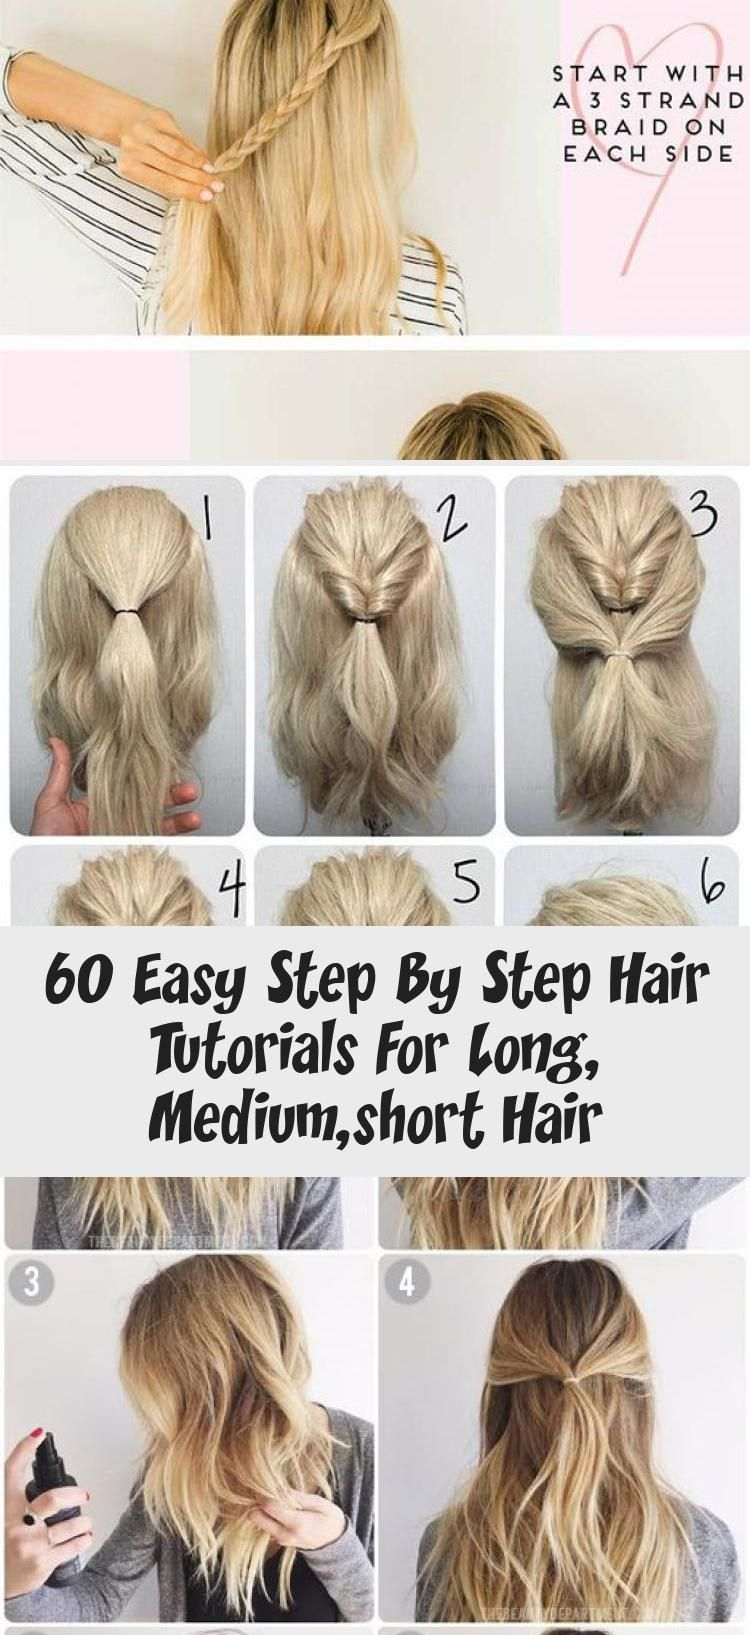 60 Easy Step By Step Hair Tutorials For Long Medium Short Hair Hairstyles In 2020 Hair Tutorial Short Hair Styles Medium Short Hair